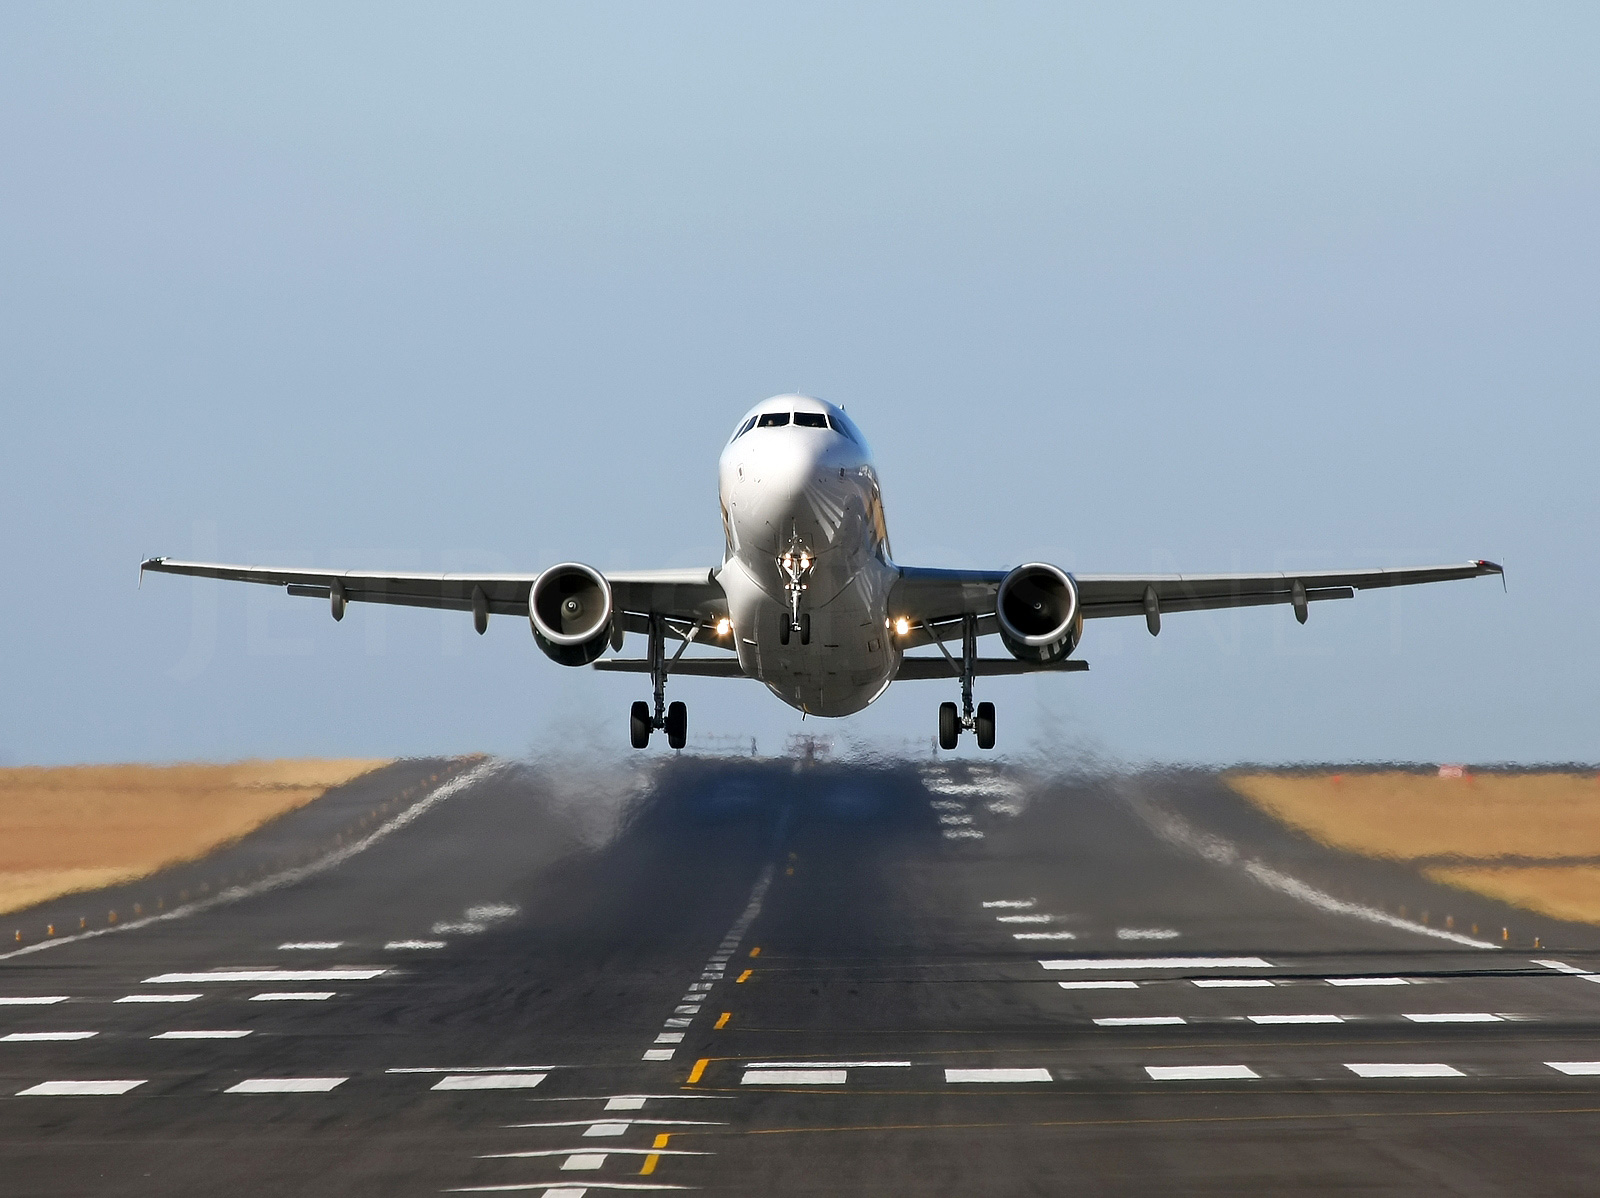 Airbus Iphone Wallpaper Commercial Aviation Airbus A319 Aircraft For Sale Off